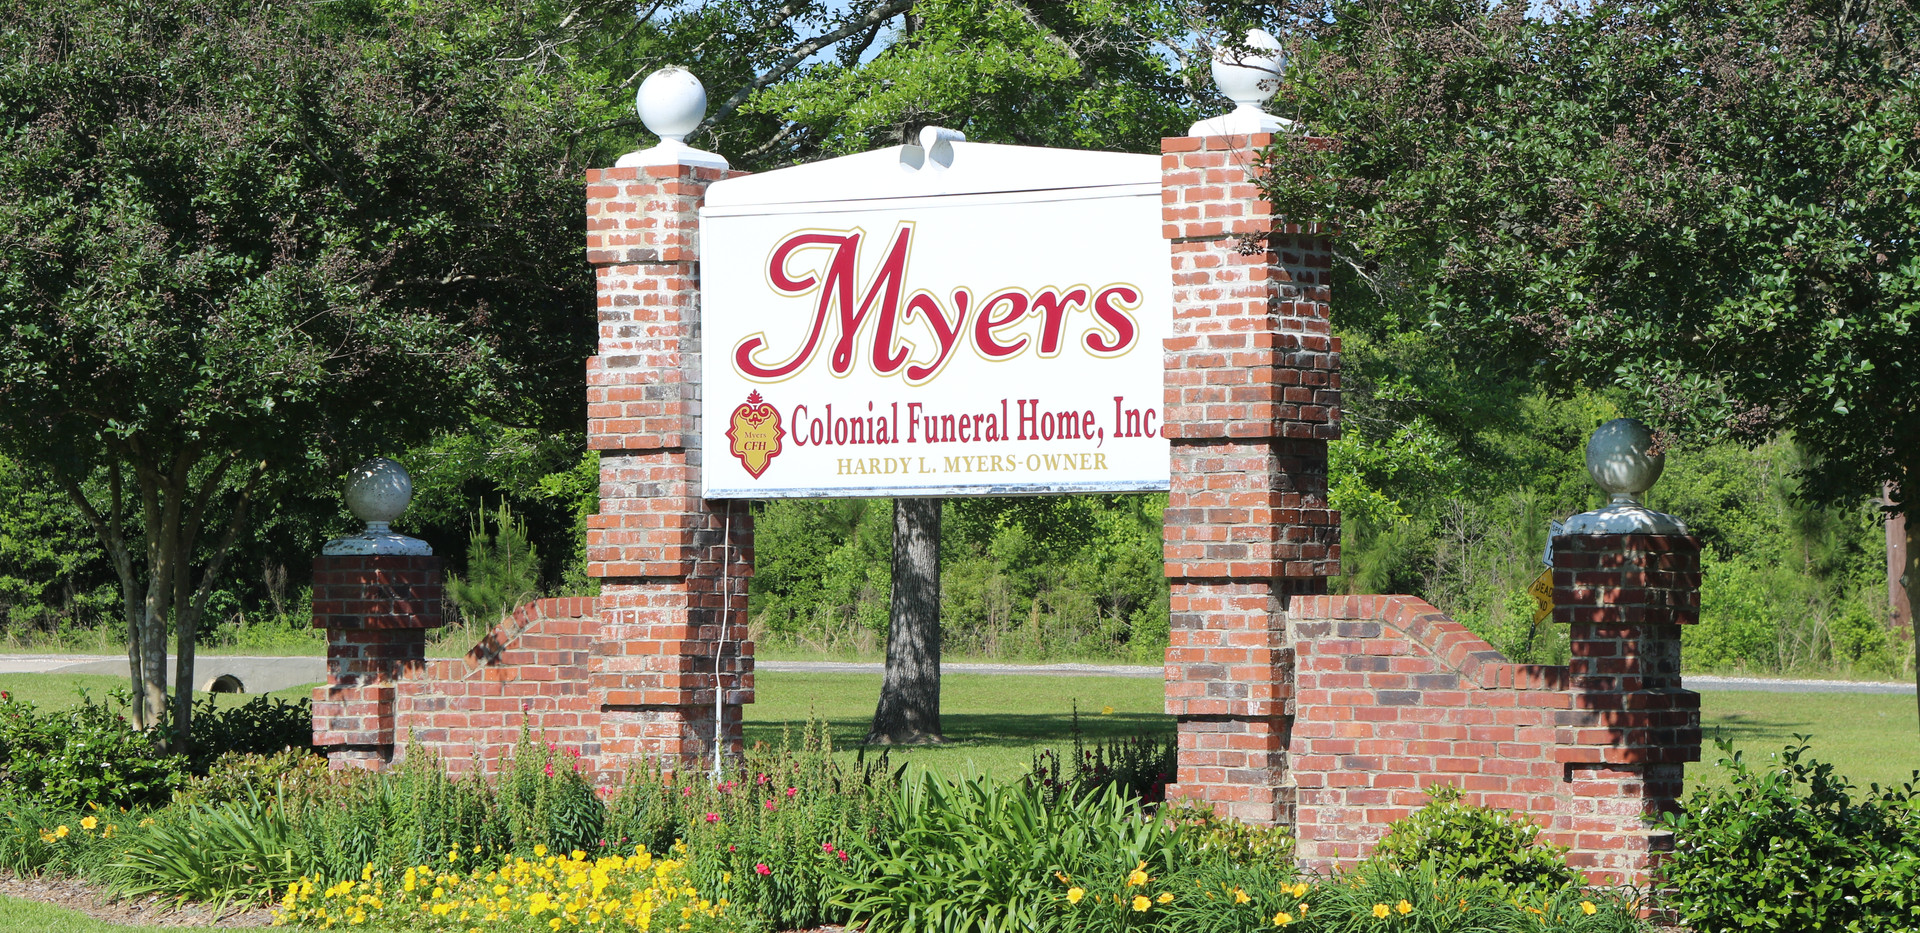 Myers Colonial Funeral Home